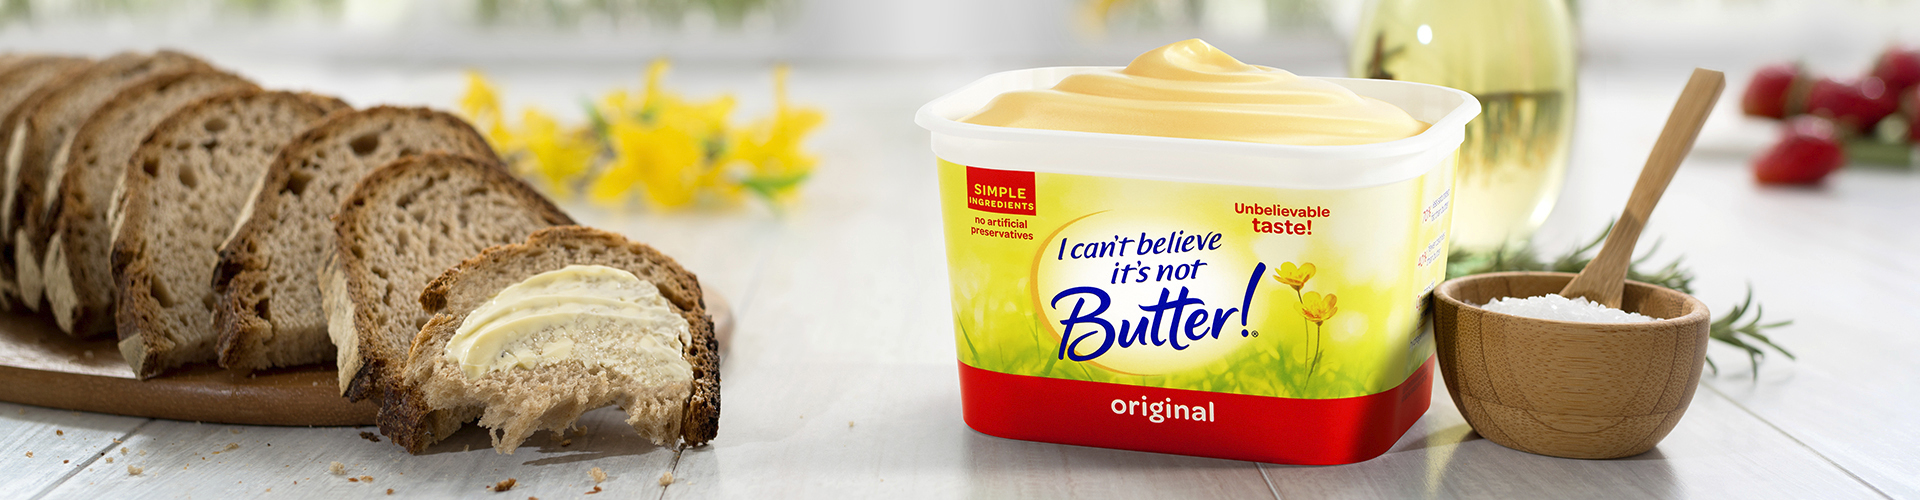 icantbeliveitsnotbutter